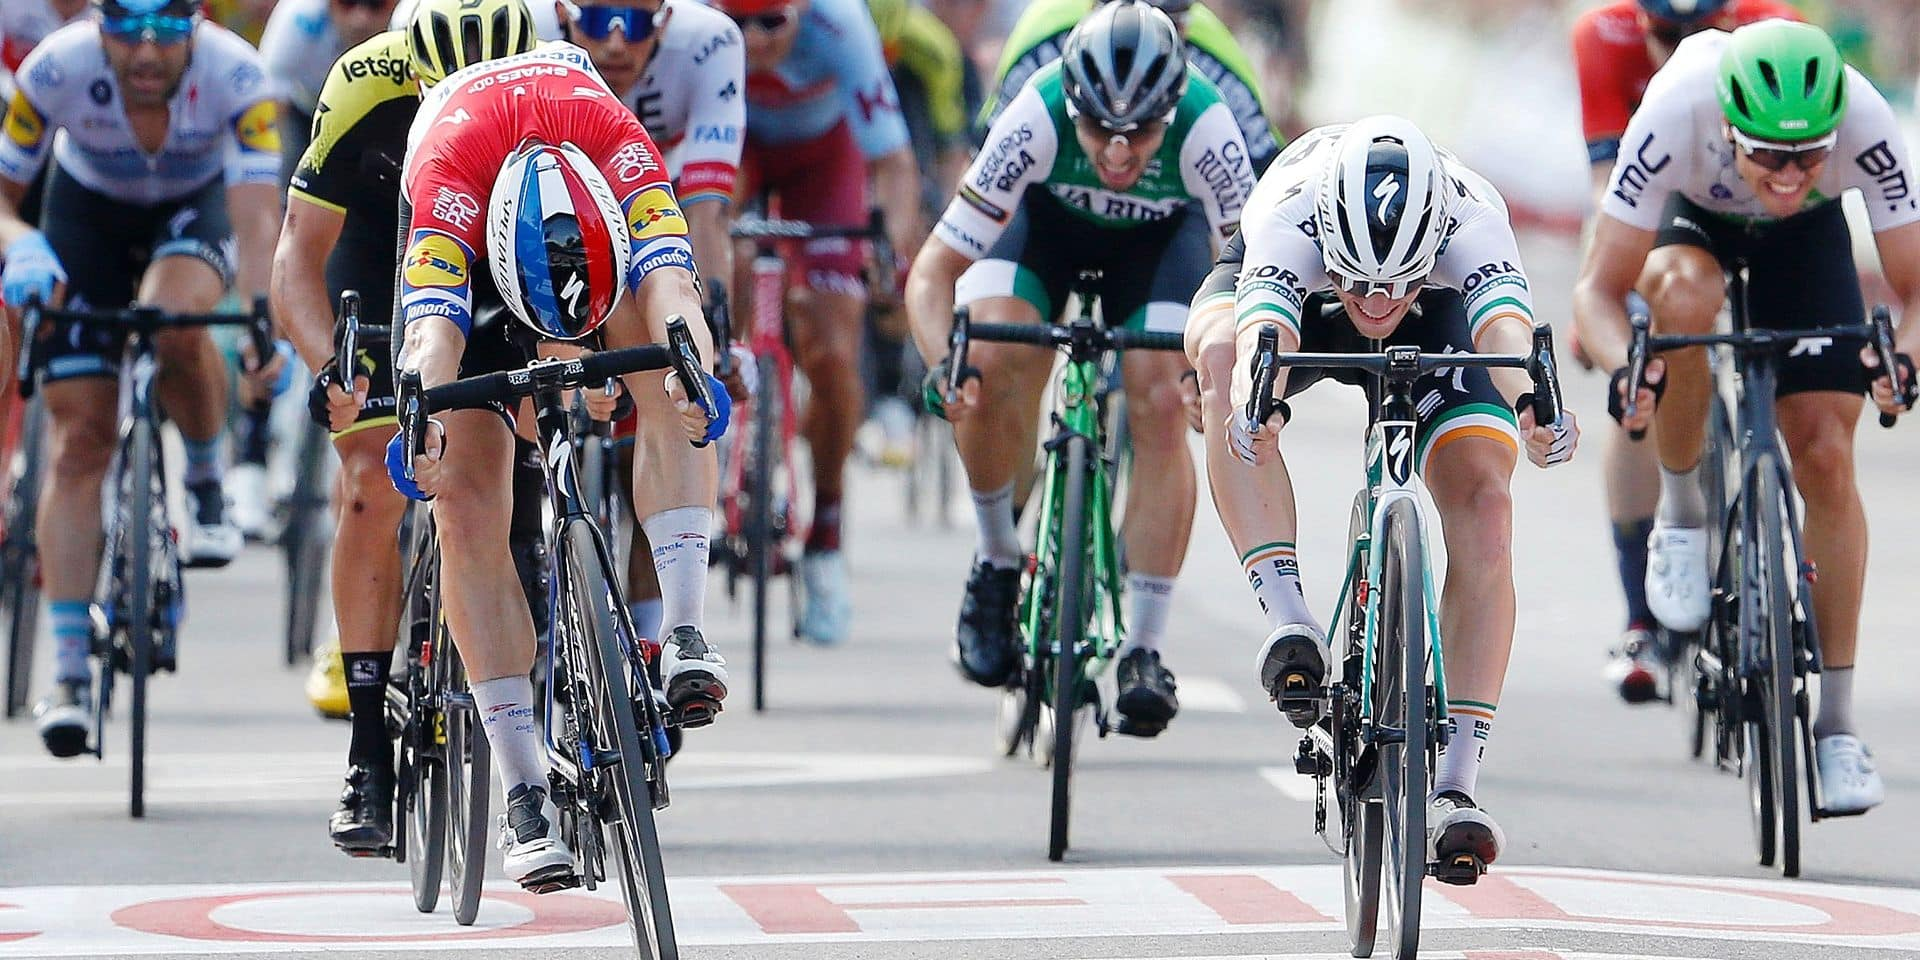 Dutch Fabio Jakobsen of Deceuninck - Quick-Step and Irish Sam Bennett of Bora-Hansgrohe finish ahead of the fourth stage of the 2019 edition of the 'Vuelta a Espana', Tour of Spain cycling race, 175,5km from Cullera to El Puig, Spain, Tuesday 27 August 2019. BELGA PHOTO YUZURU SUNADA